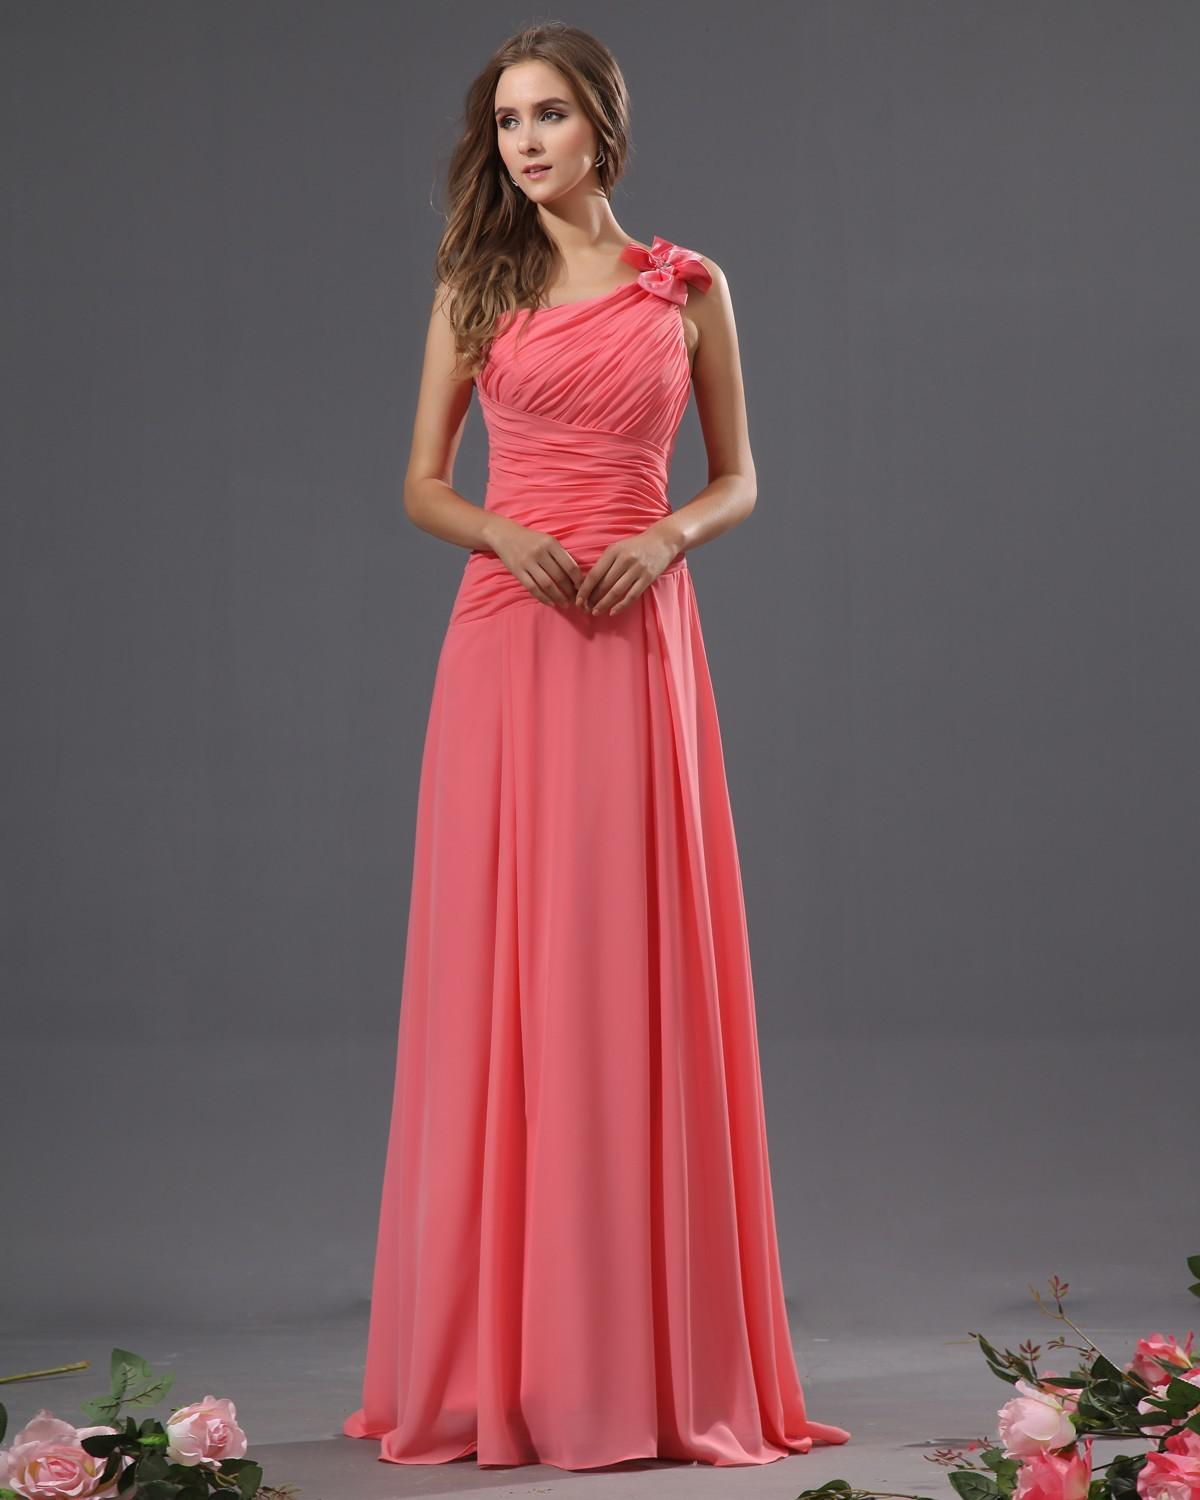 Discount Free Shipping Cwds078 One Shoulder With: Charming Fashion A Line One Shoulder Watermelon Coral Pink